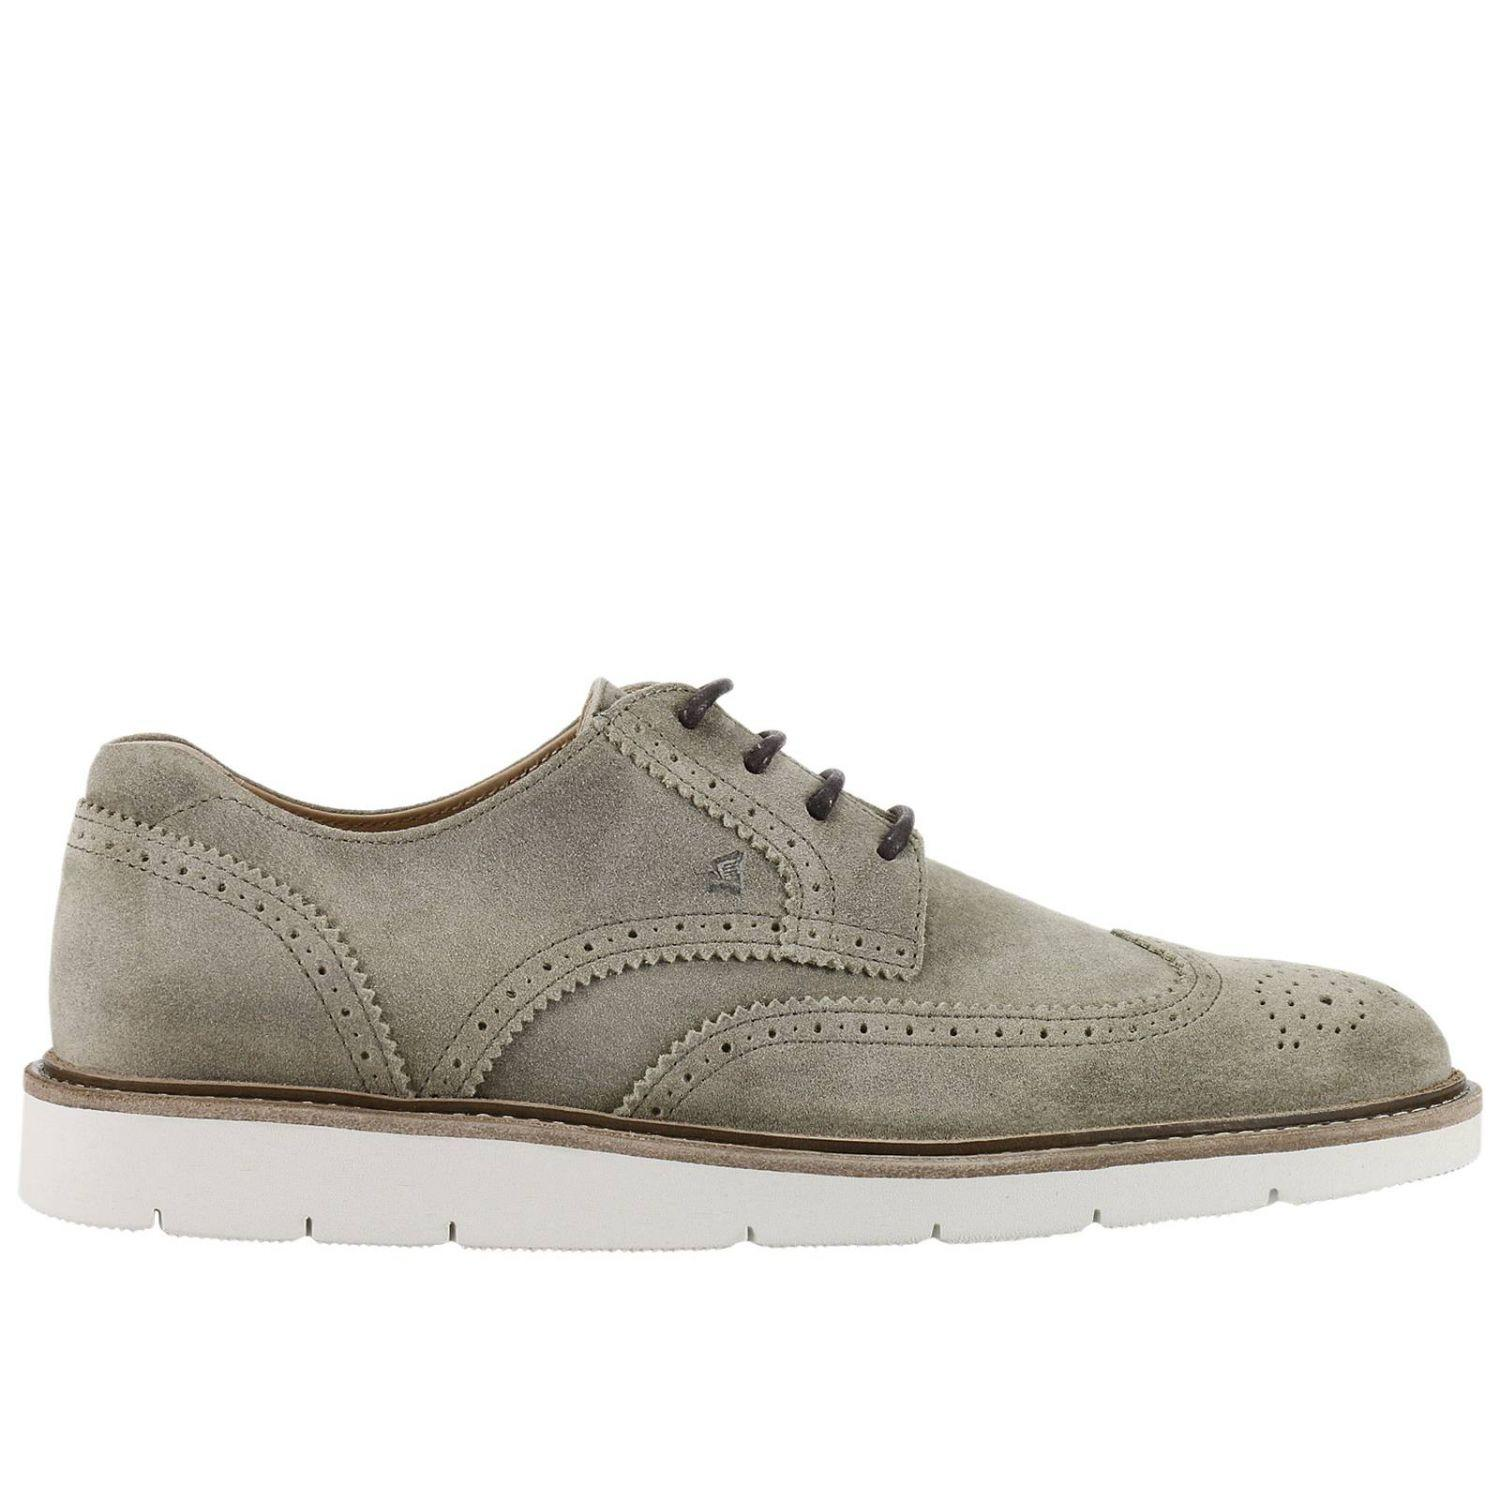 brogue guys Shop men's brogues at mr porter, the men's style destination discover our selection of over 400 designers to find your perfect look.